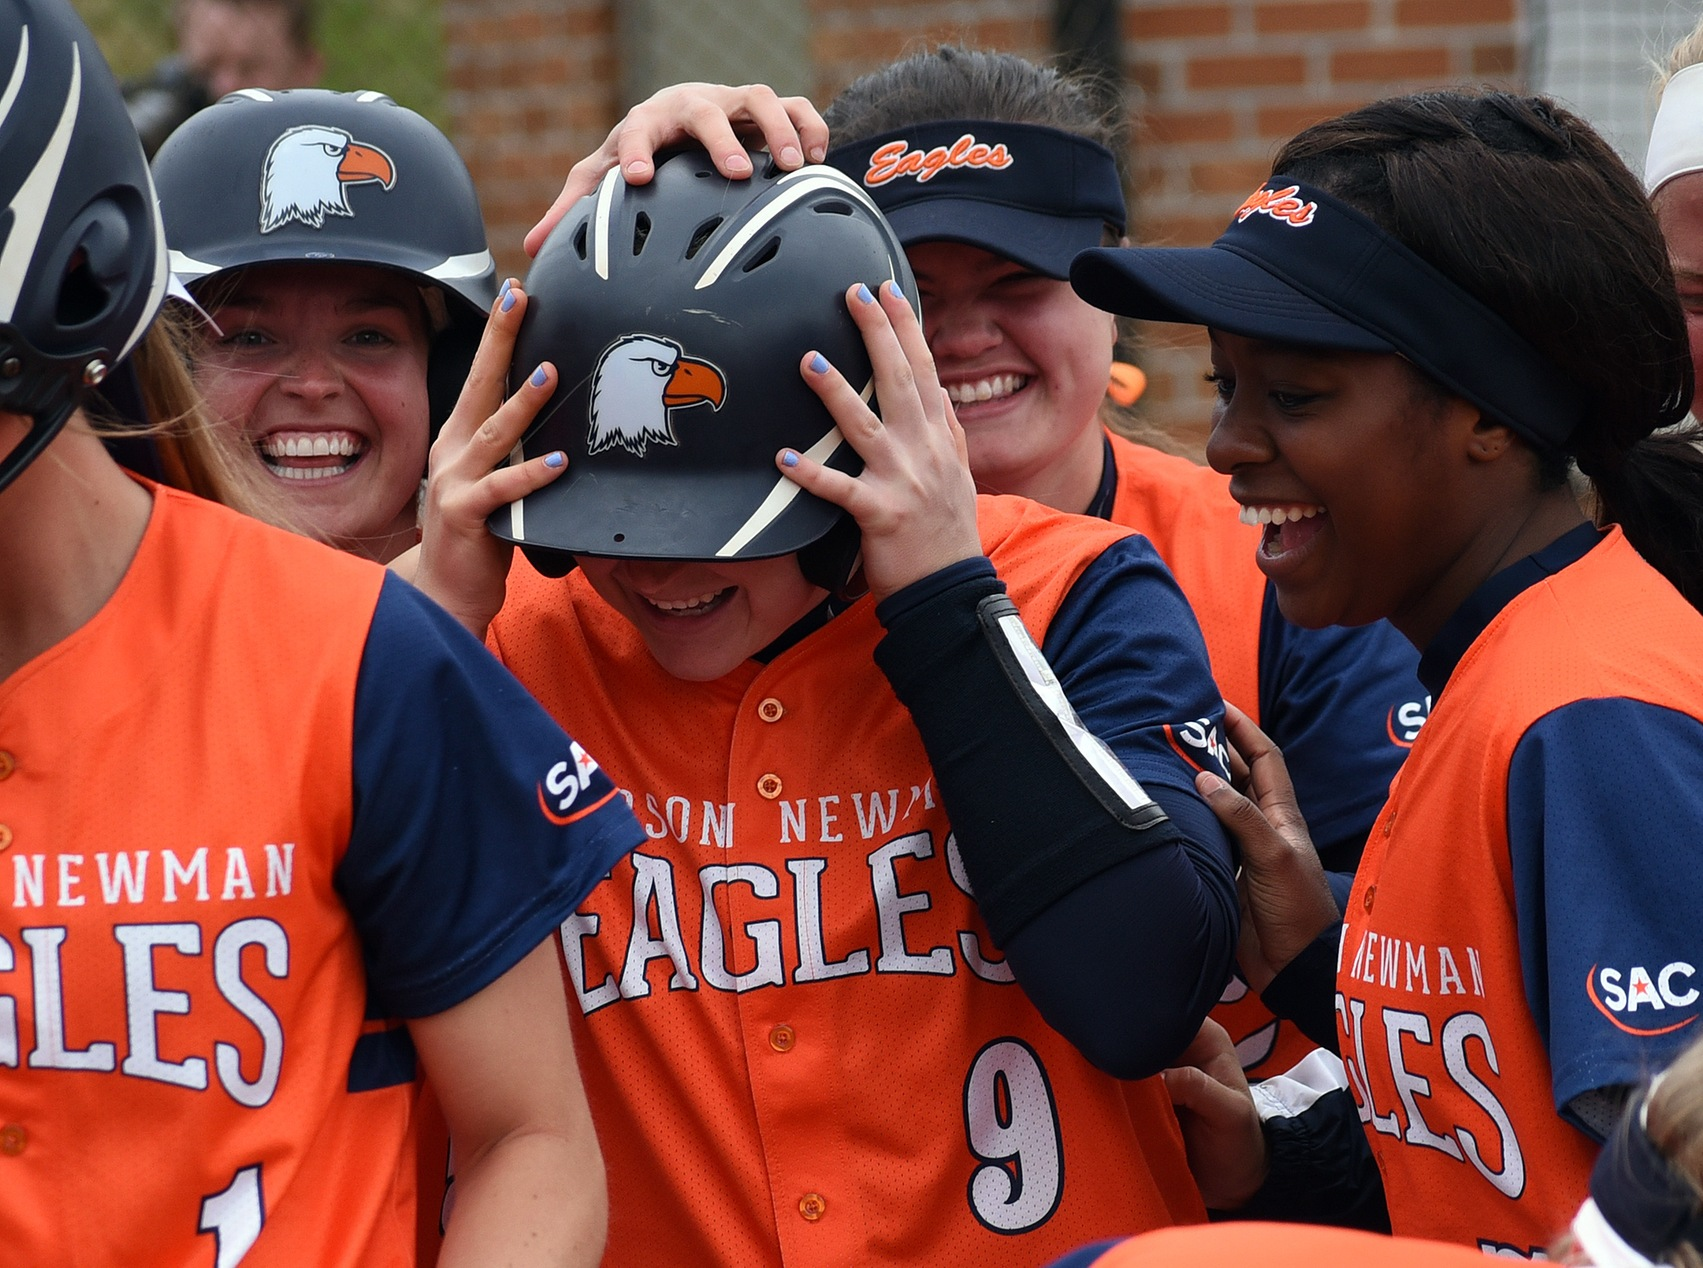 Eagles set for Wednesday matchup against Mars Hill